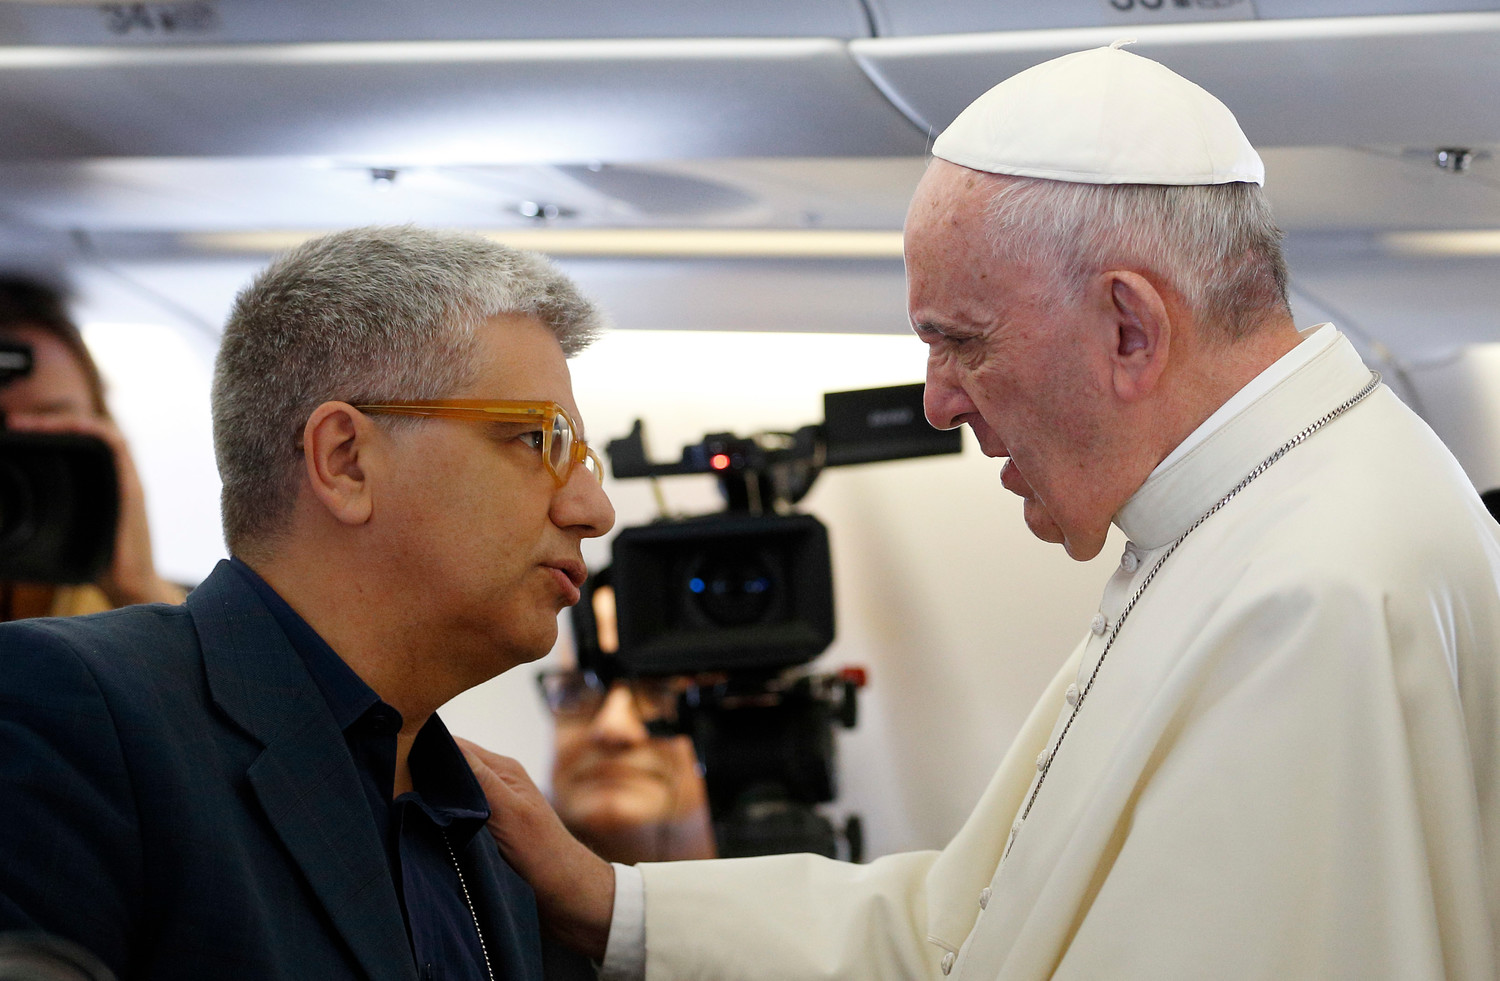 "Pope Francis speaks with Italian journalist Andrea Tornielli aboard his flight from Rome to Havana in this Sept. 19, 2015, file photo. The Vatican announced Dec. 18 that the Pope made new appointments to the Dicastery for Communication, naming Tornielli, an Italian journalist, as its ""editorial director."""